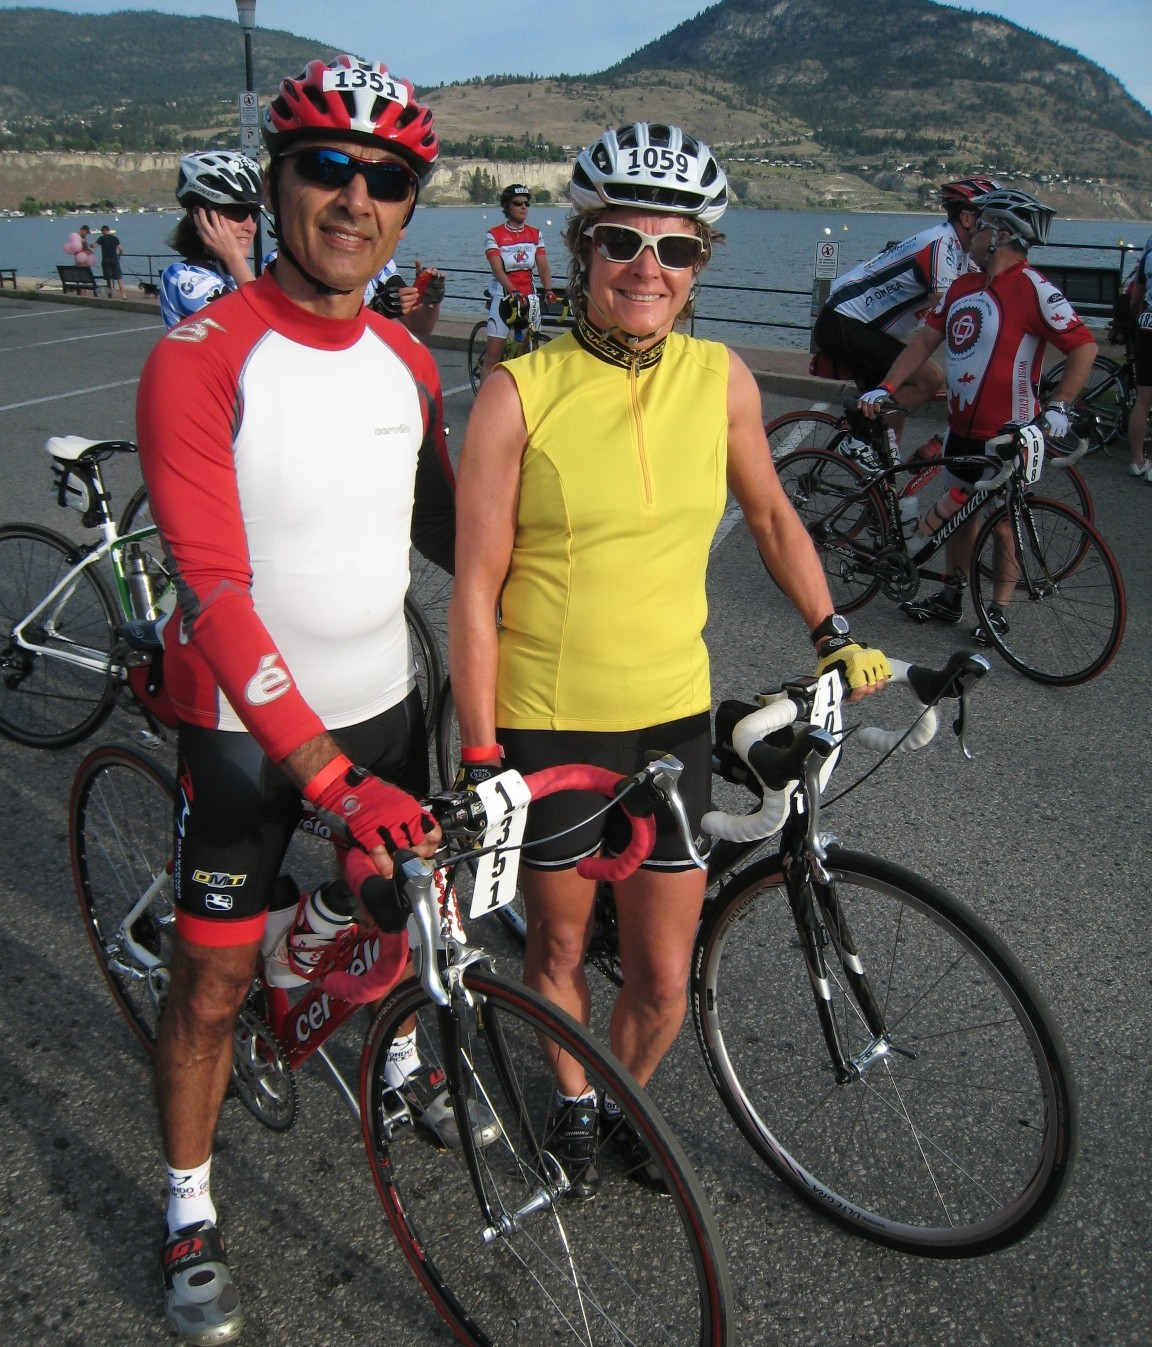 Bicycling Penticton and Staying at the Bowmont Motel